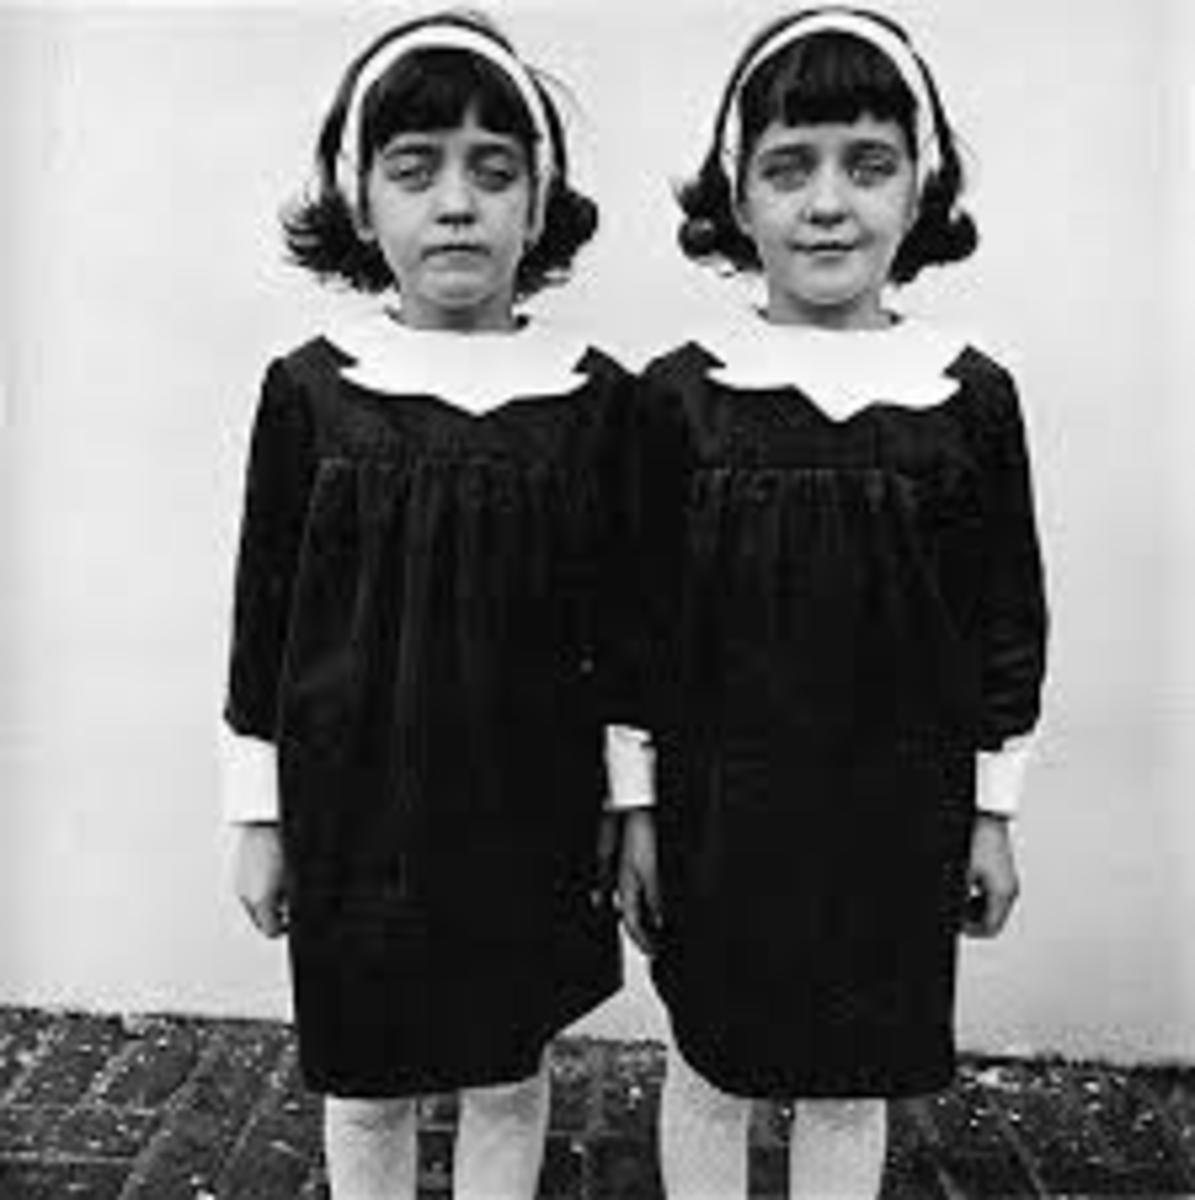 The Mystery of the Pollock Twins